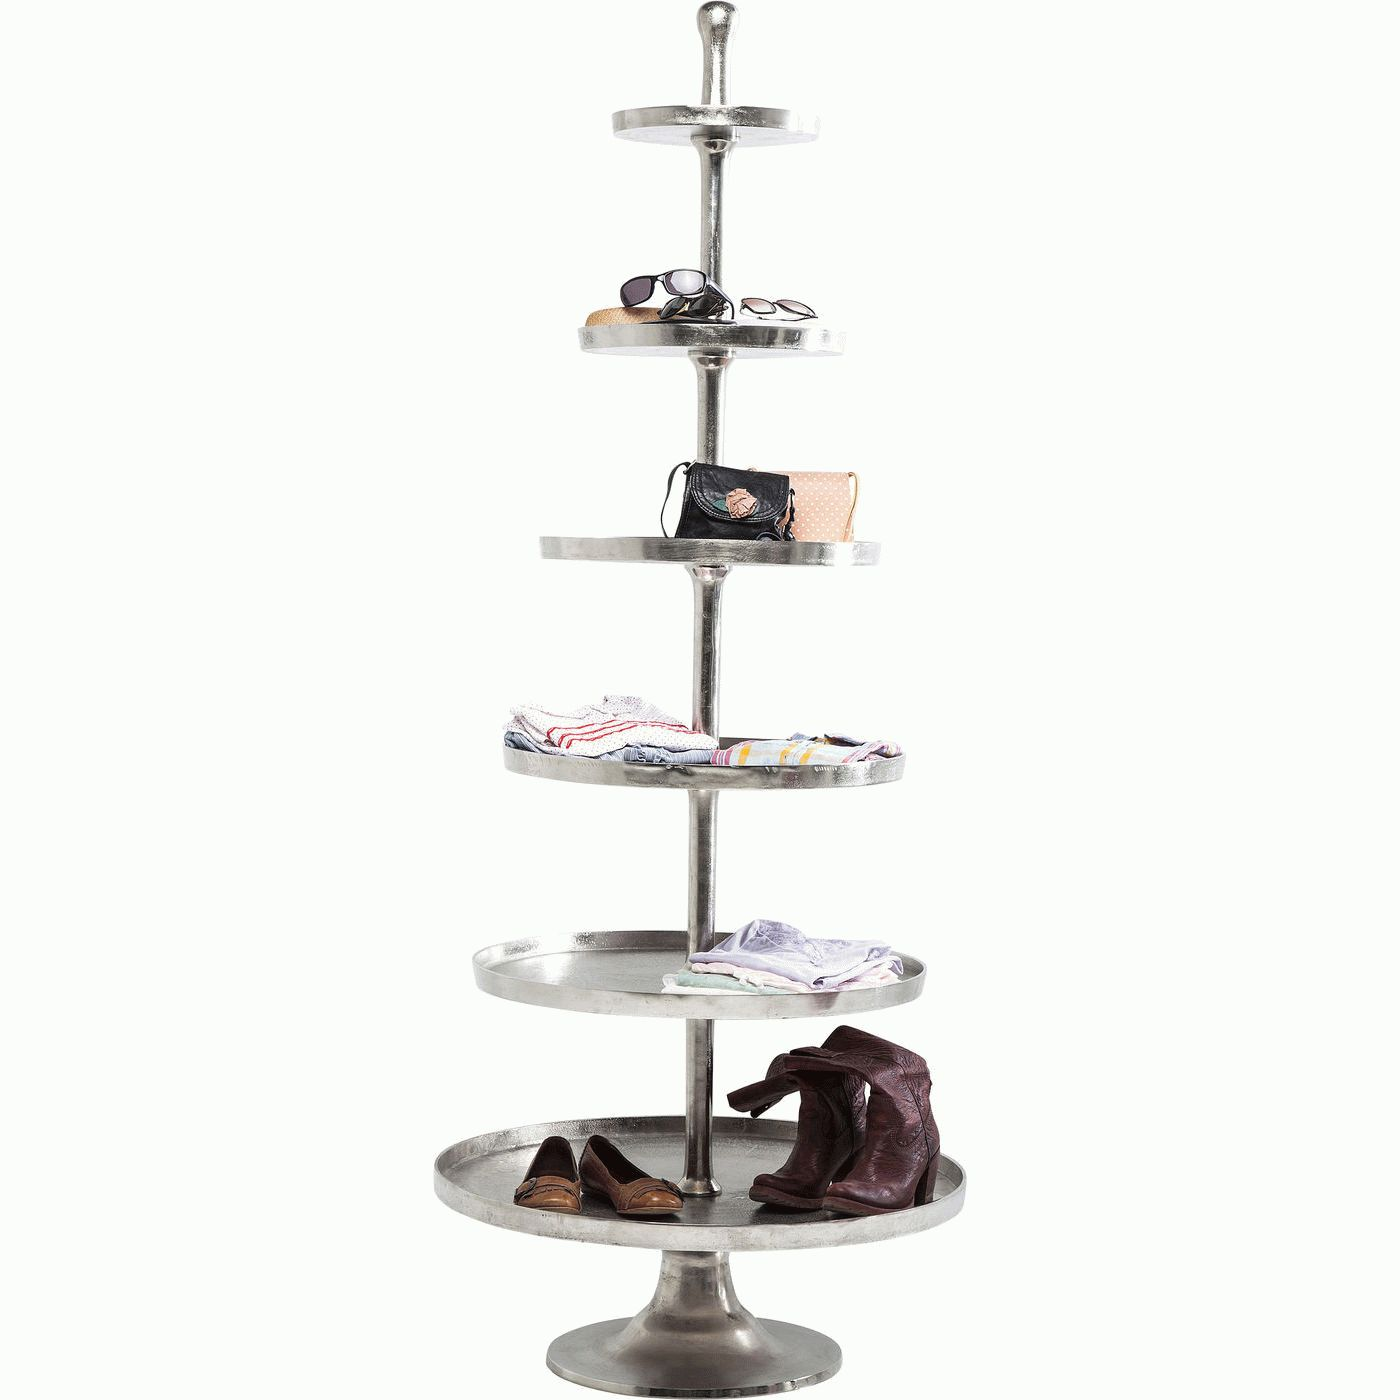 deco etagere paradise 200cm kare design. Black Bedroom Furniture Sets. Home Design Ideas